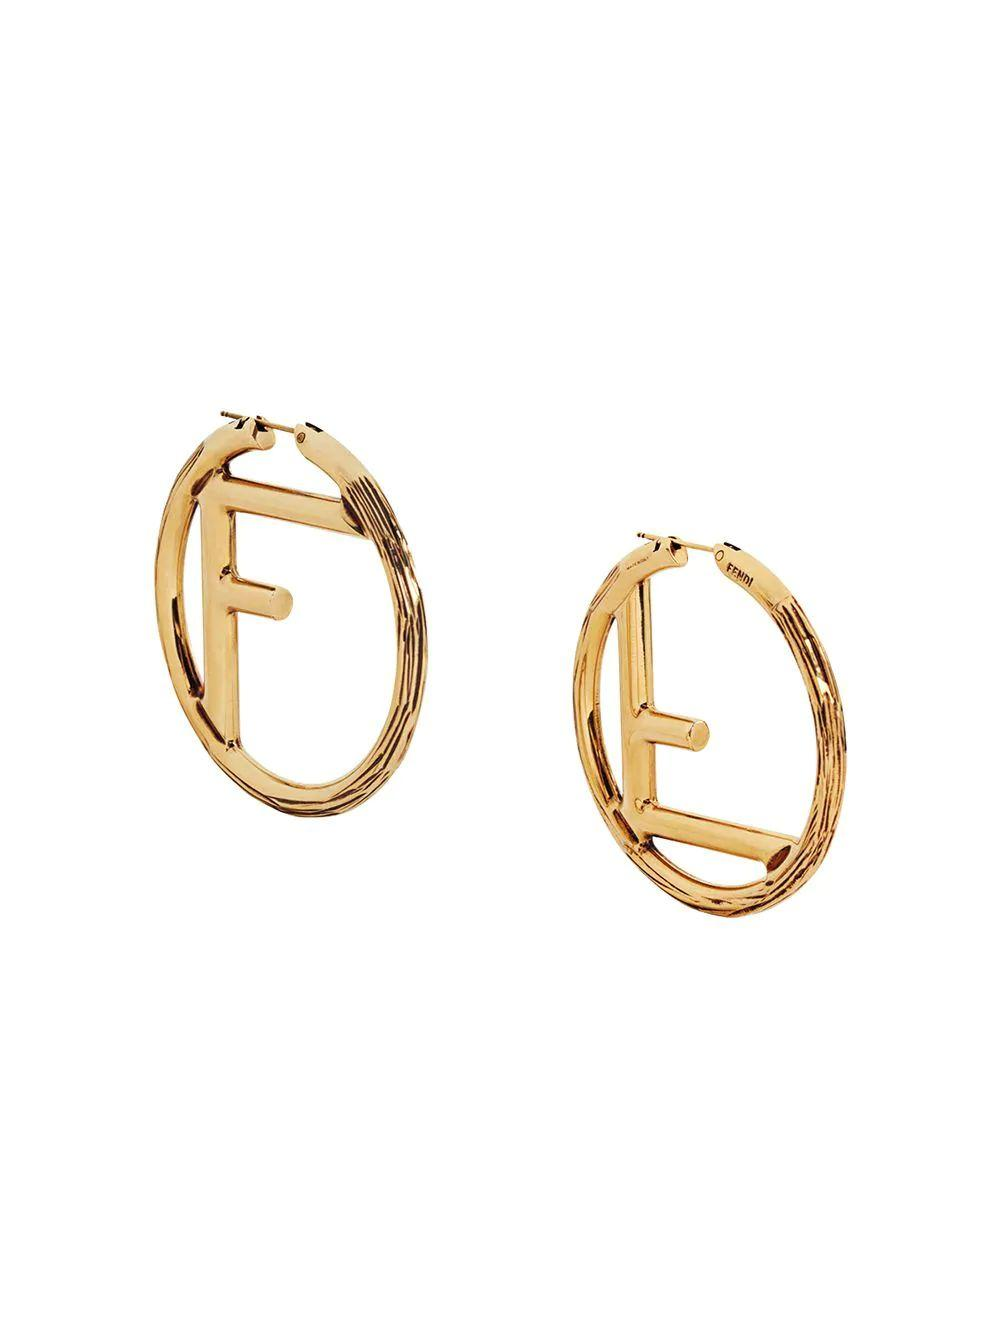 F Is For Fendi Logo Earrings